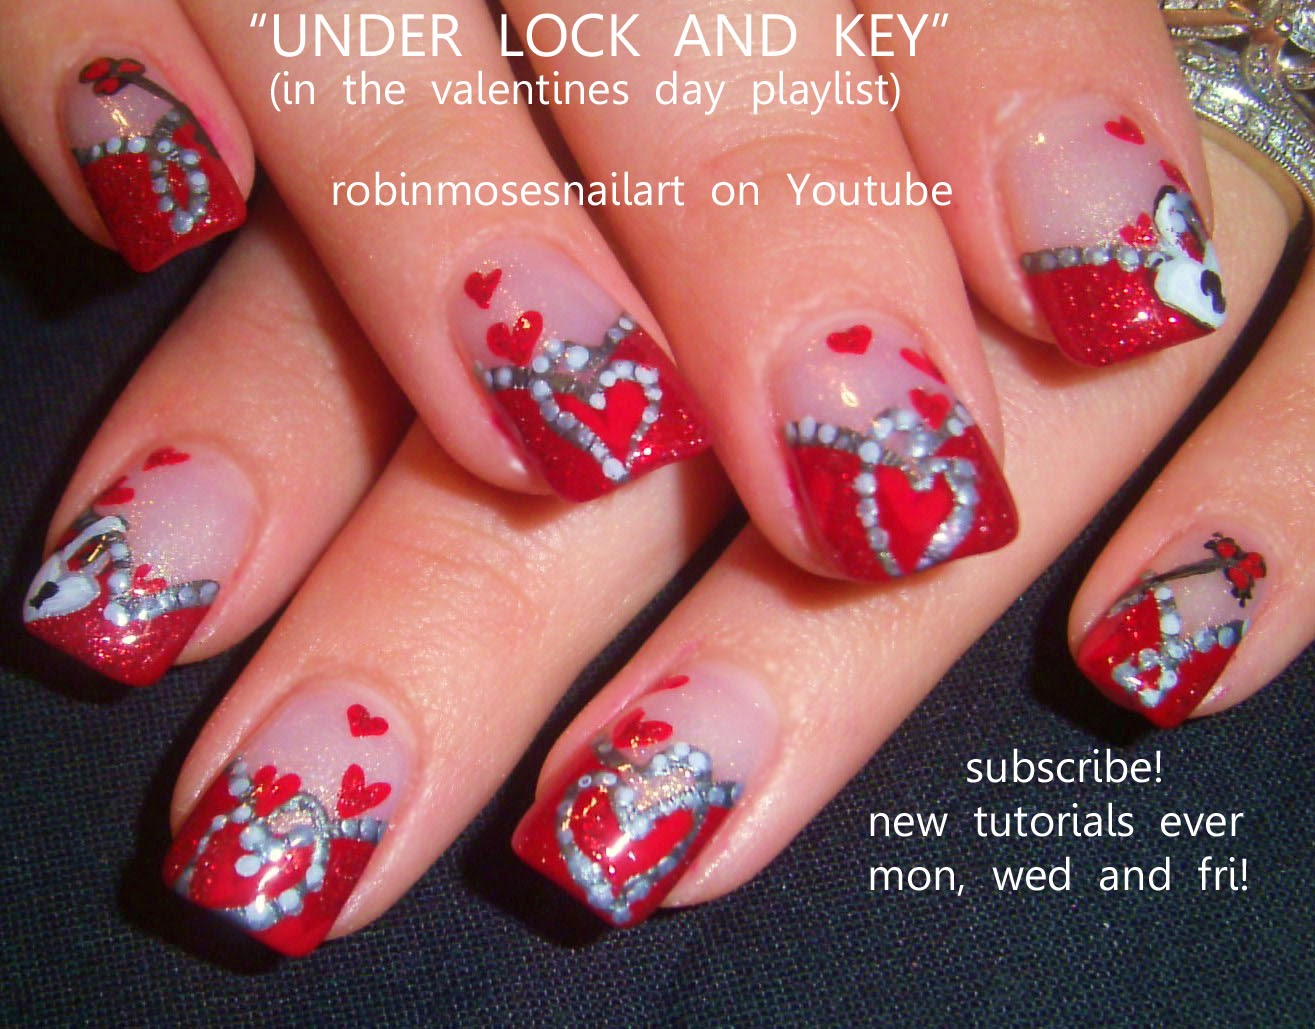 Valentine Design Nail Art Images - easy nail designs for beginners ...